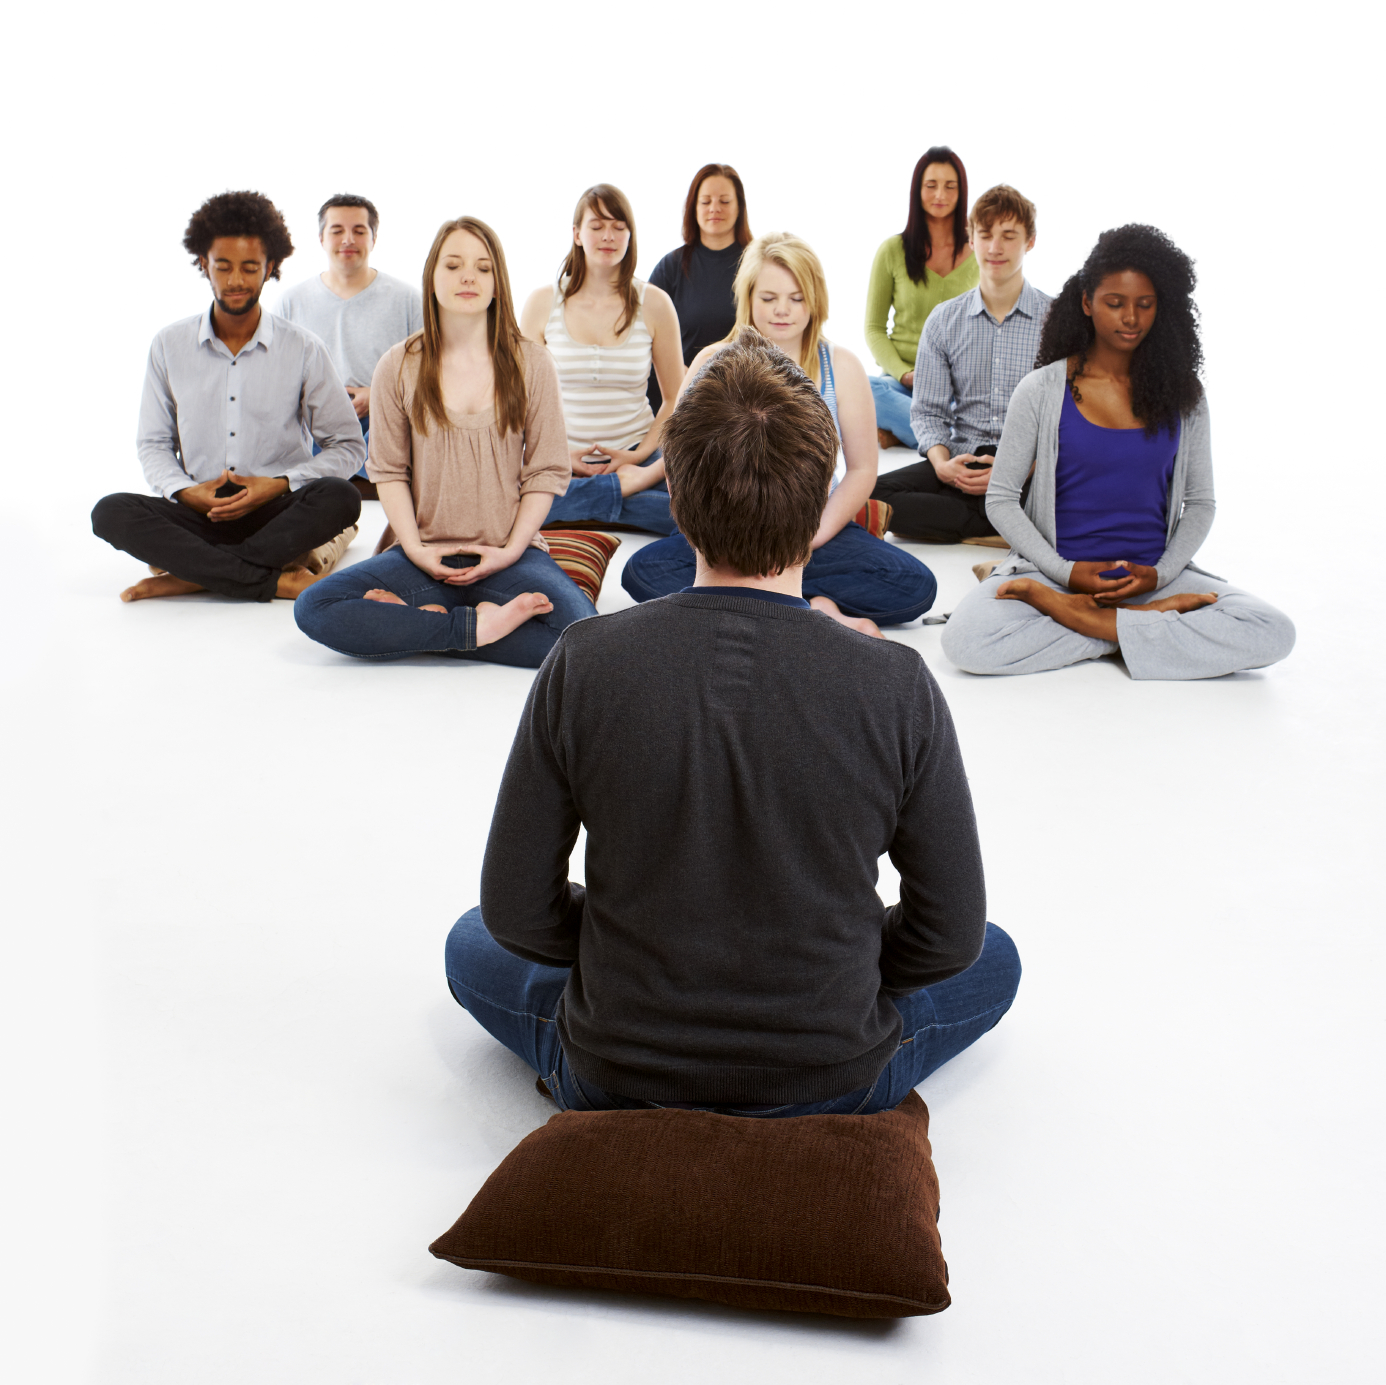 meditation teacher meditating with a group of people isolated on white